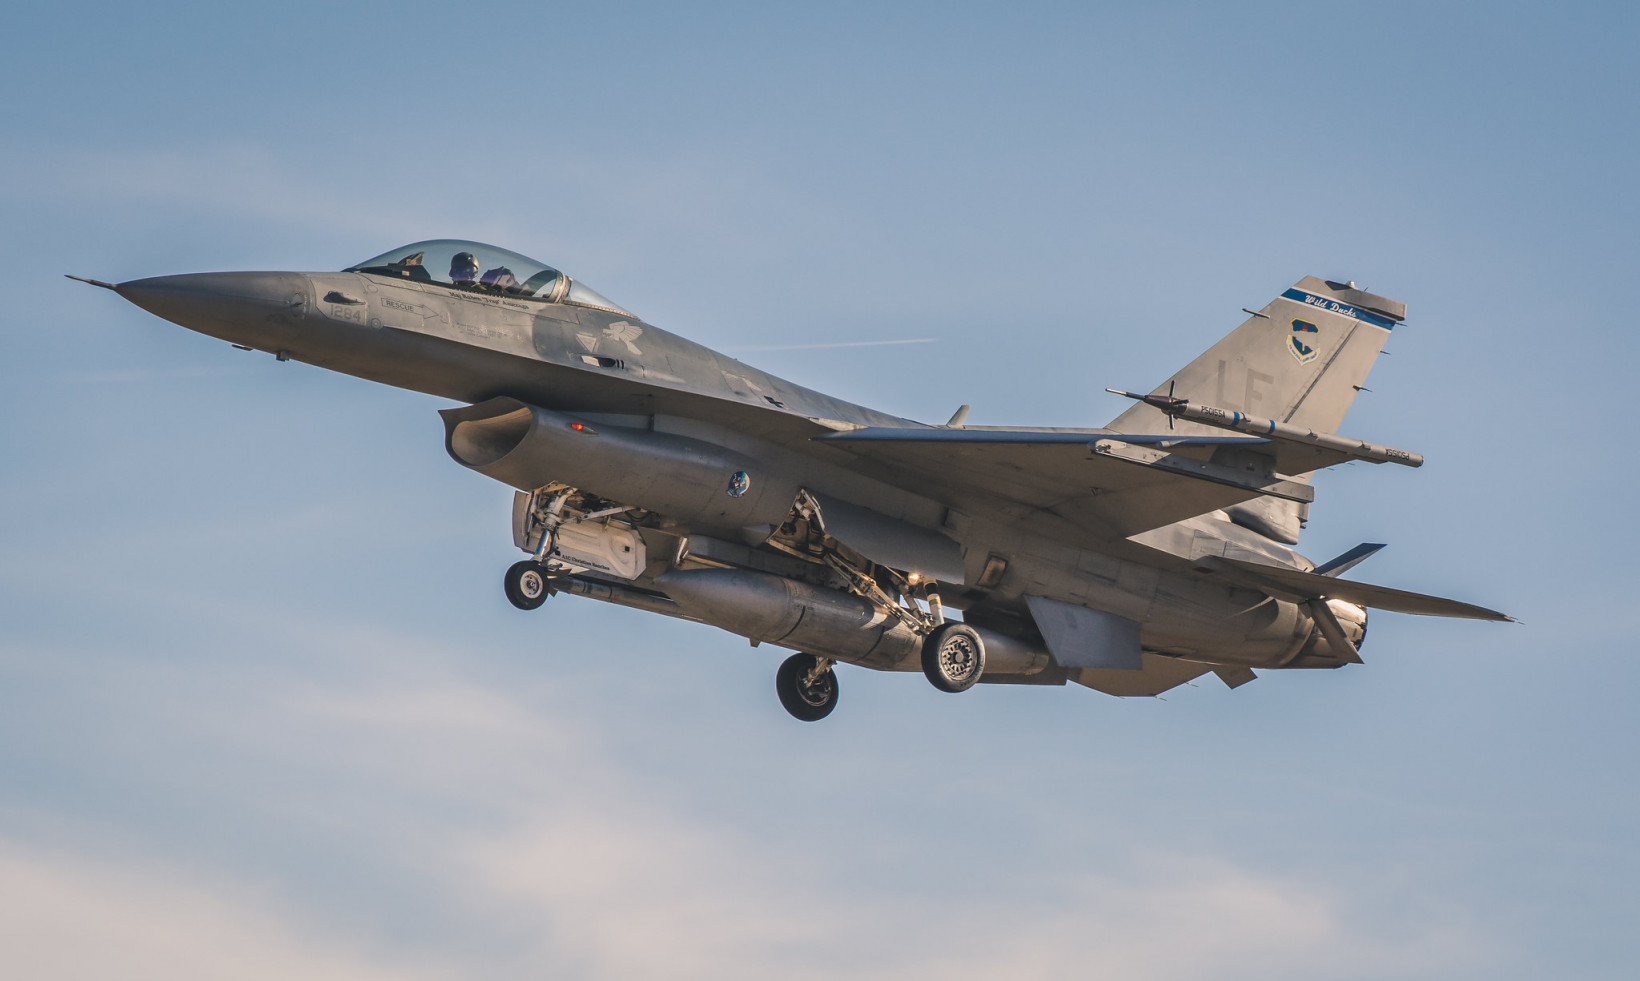 The F-16 was designed as an air-to-air fighter but current models are also effective for ground attacks.